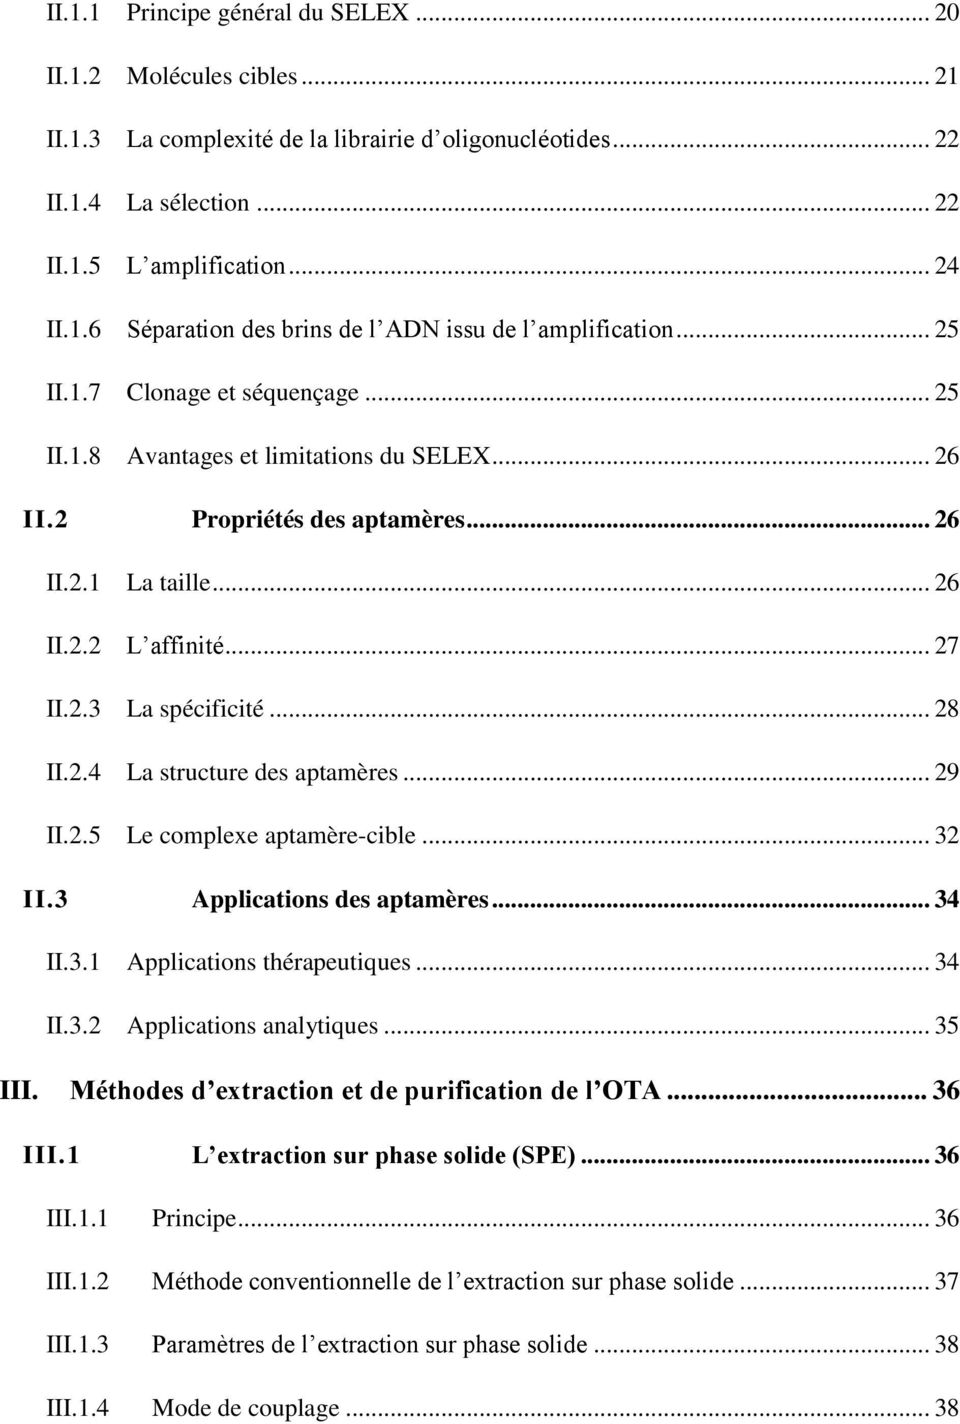 2.4 La structure des aptamères... 29 II.2.5 Le complexe aptamère-cible... 32 II.3 Applications des aptamères... 34 II.3.1 Applications thérapeutiques... 34 II.3.2 Applications analytiques... 35 III.